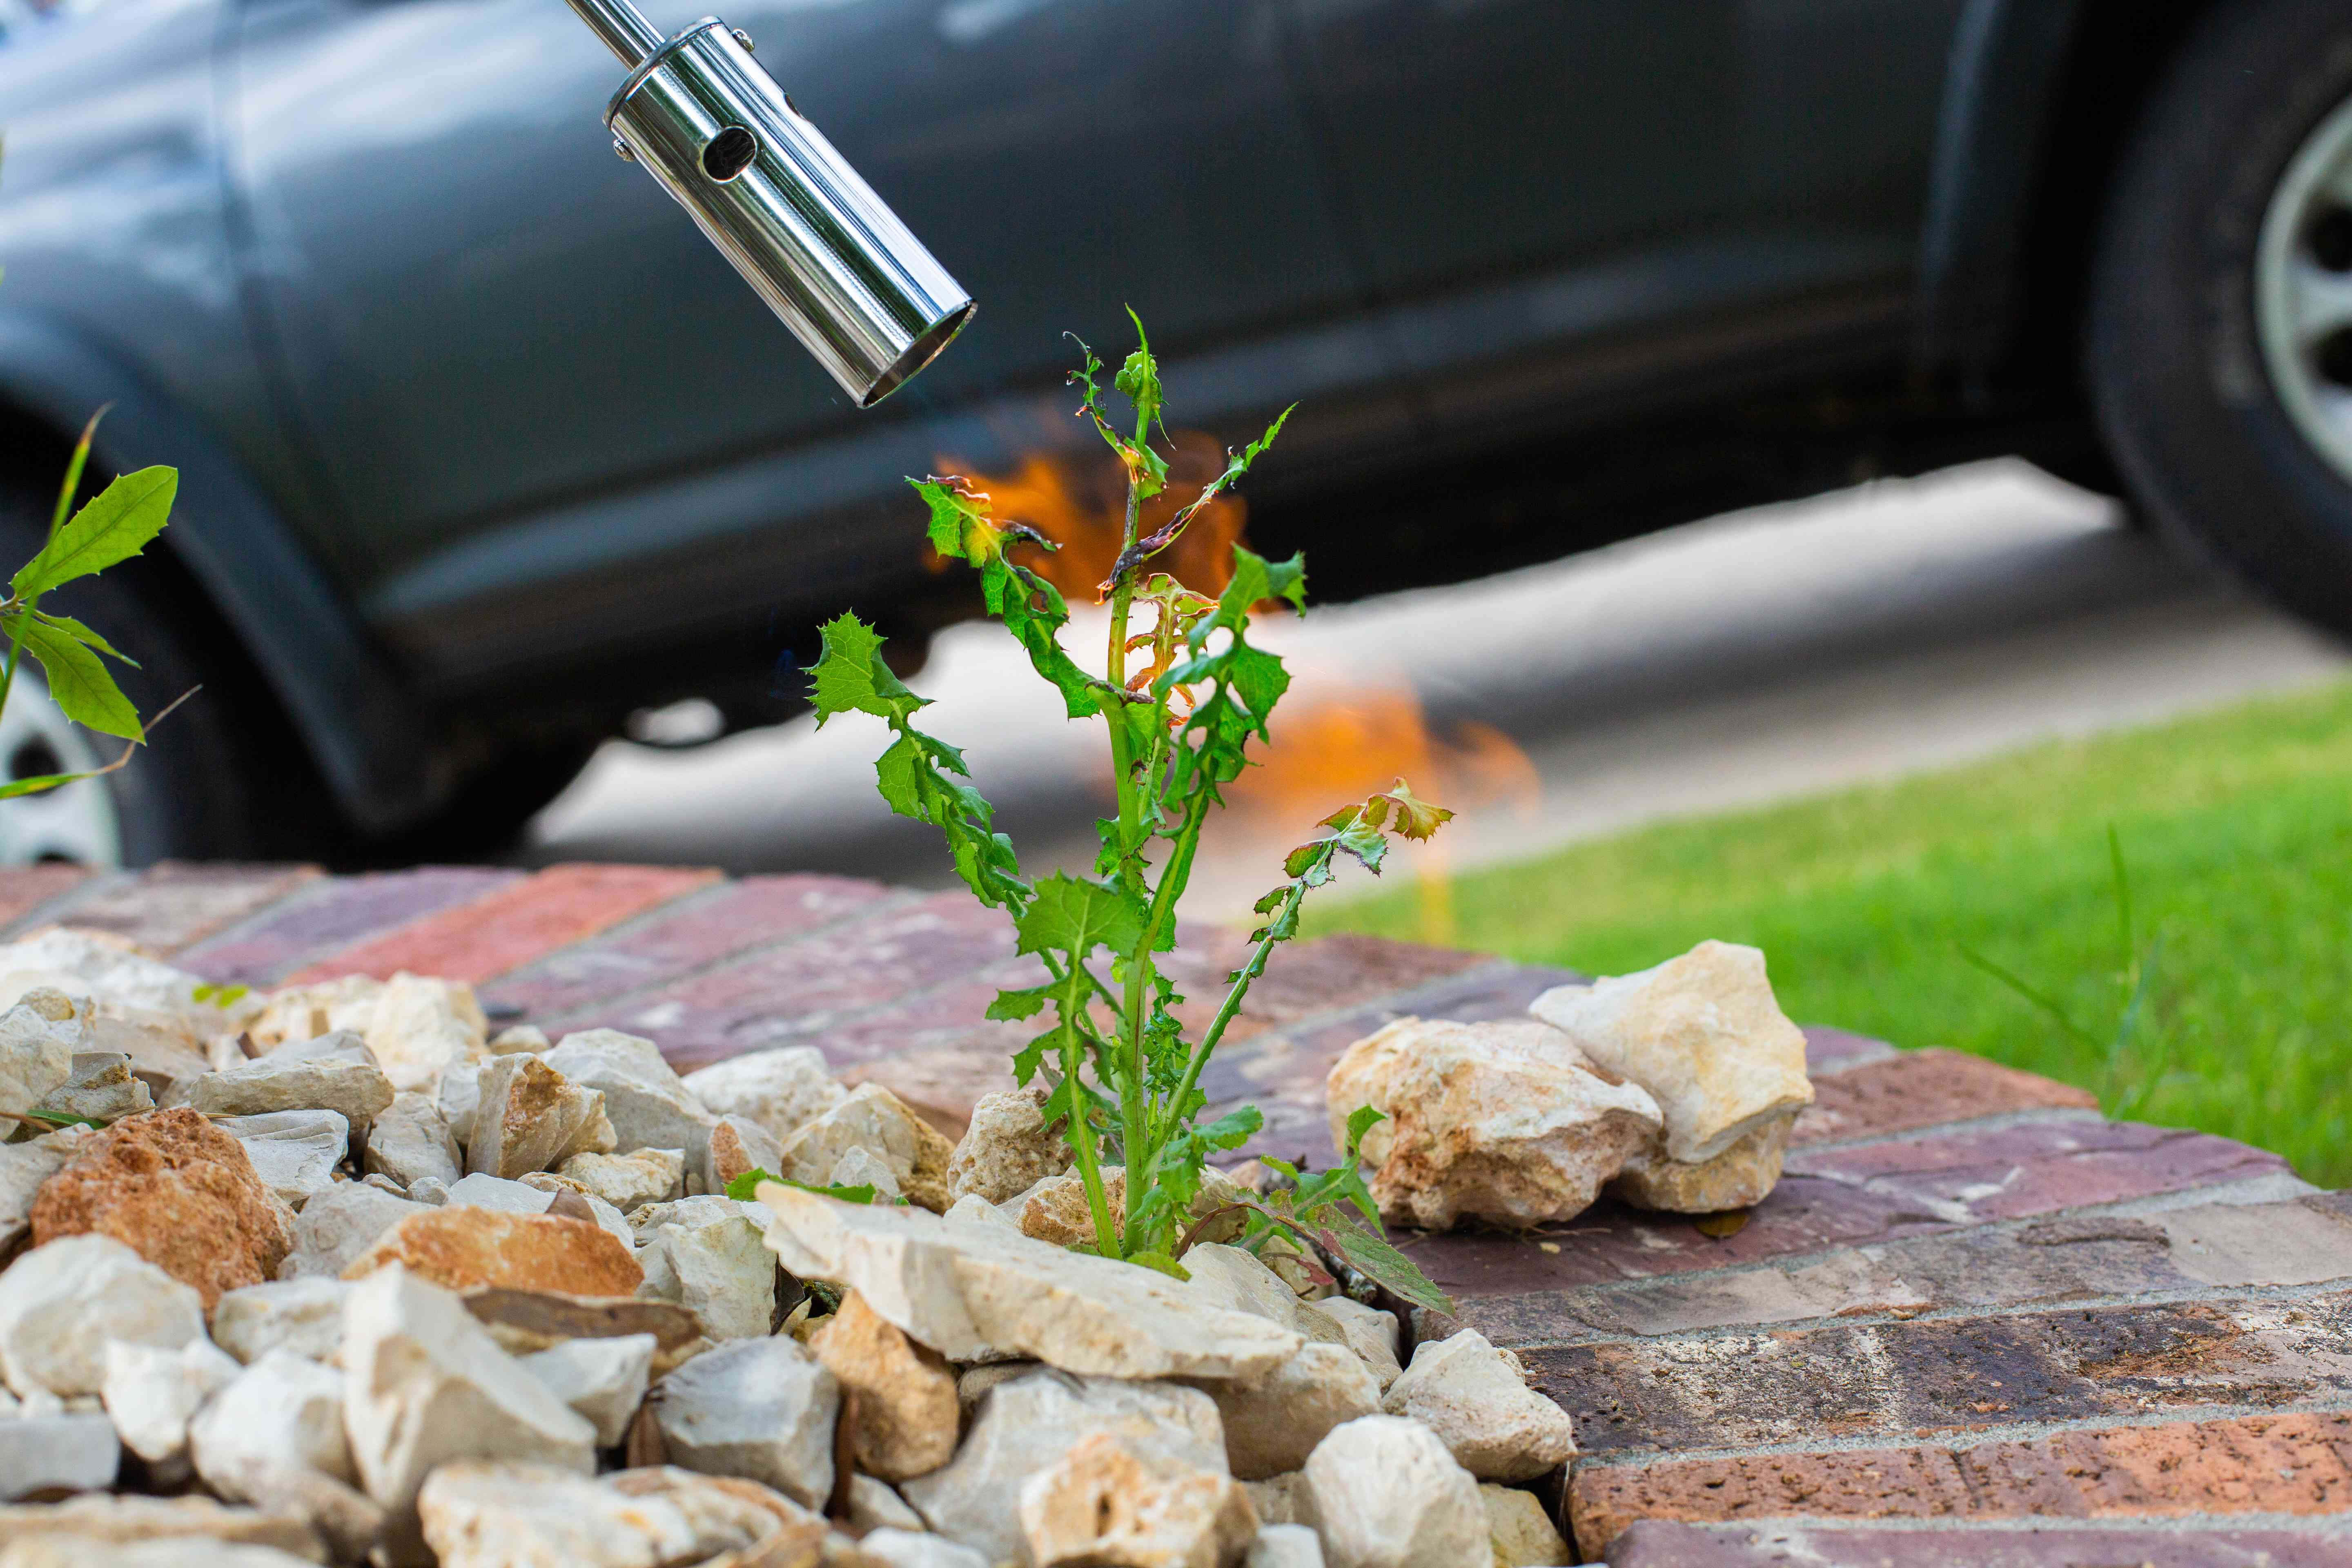 using a propane torch to kill weeds